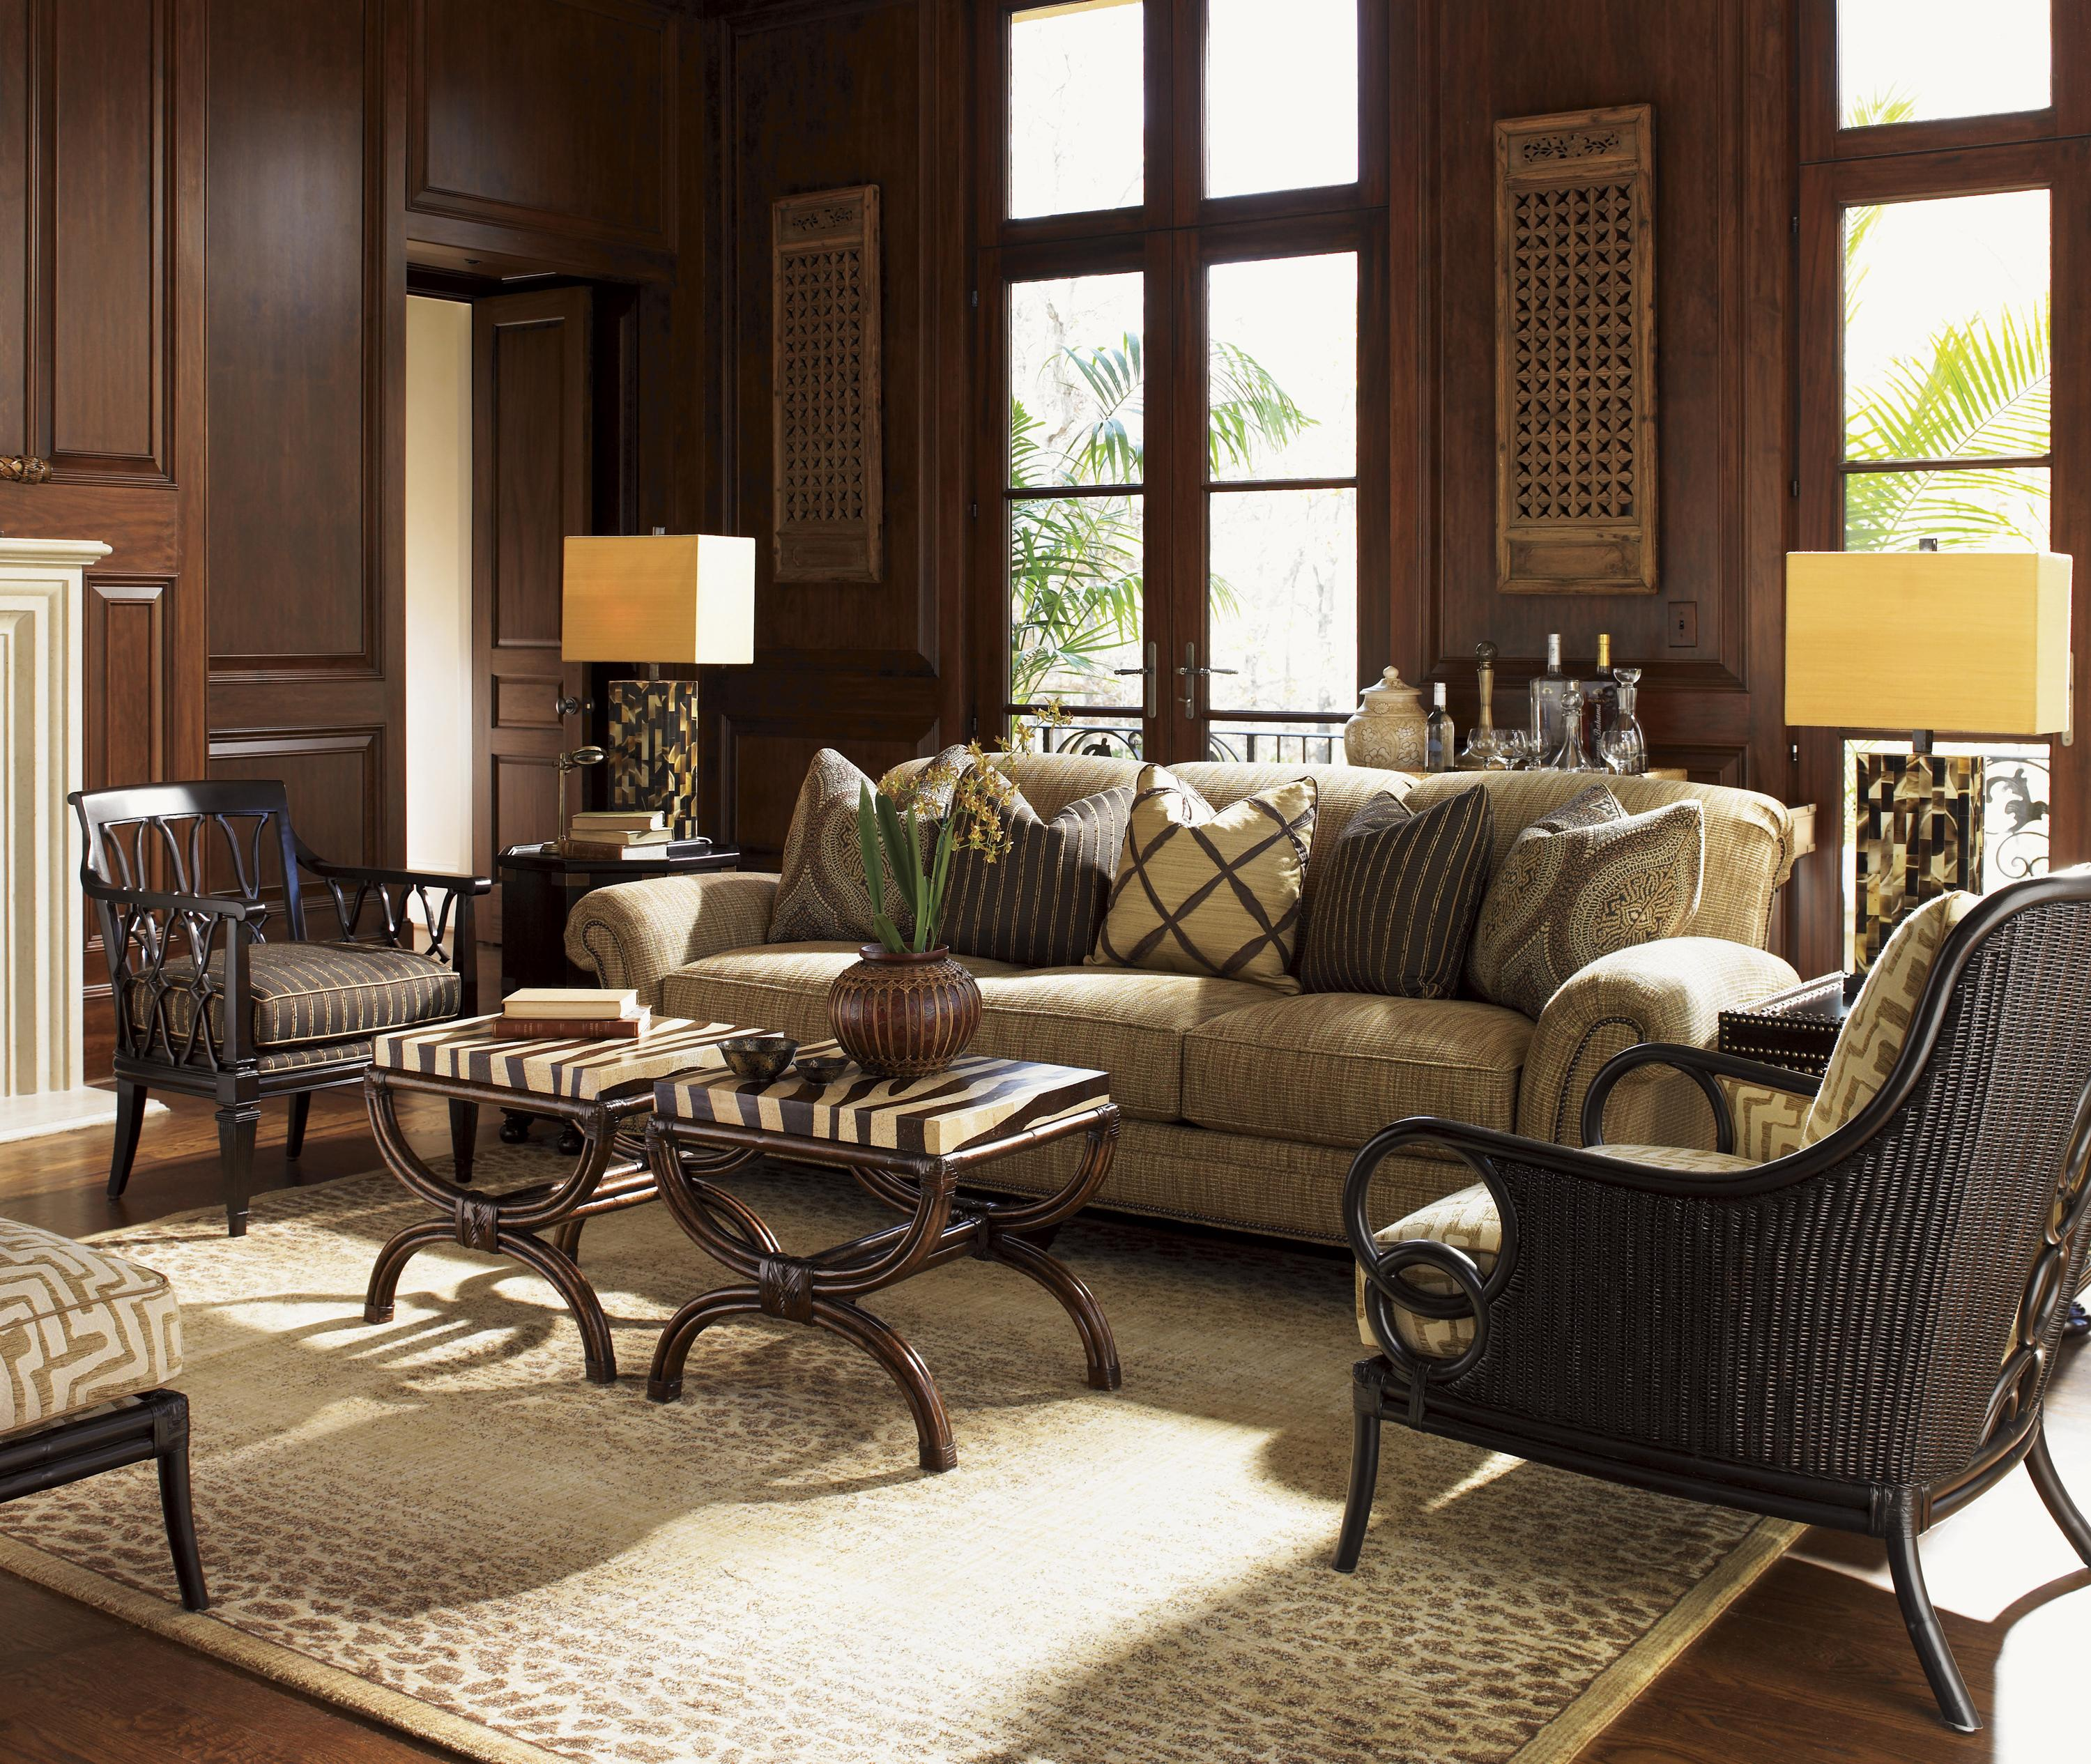 Home Furnisher: Royal Kahala (538) By Tommy Bahama Home